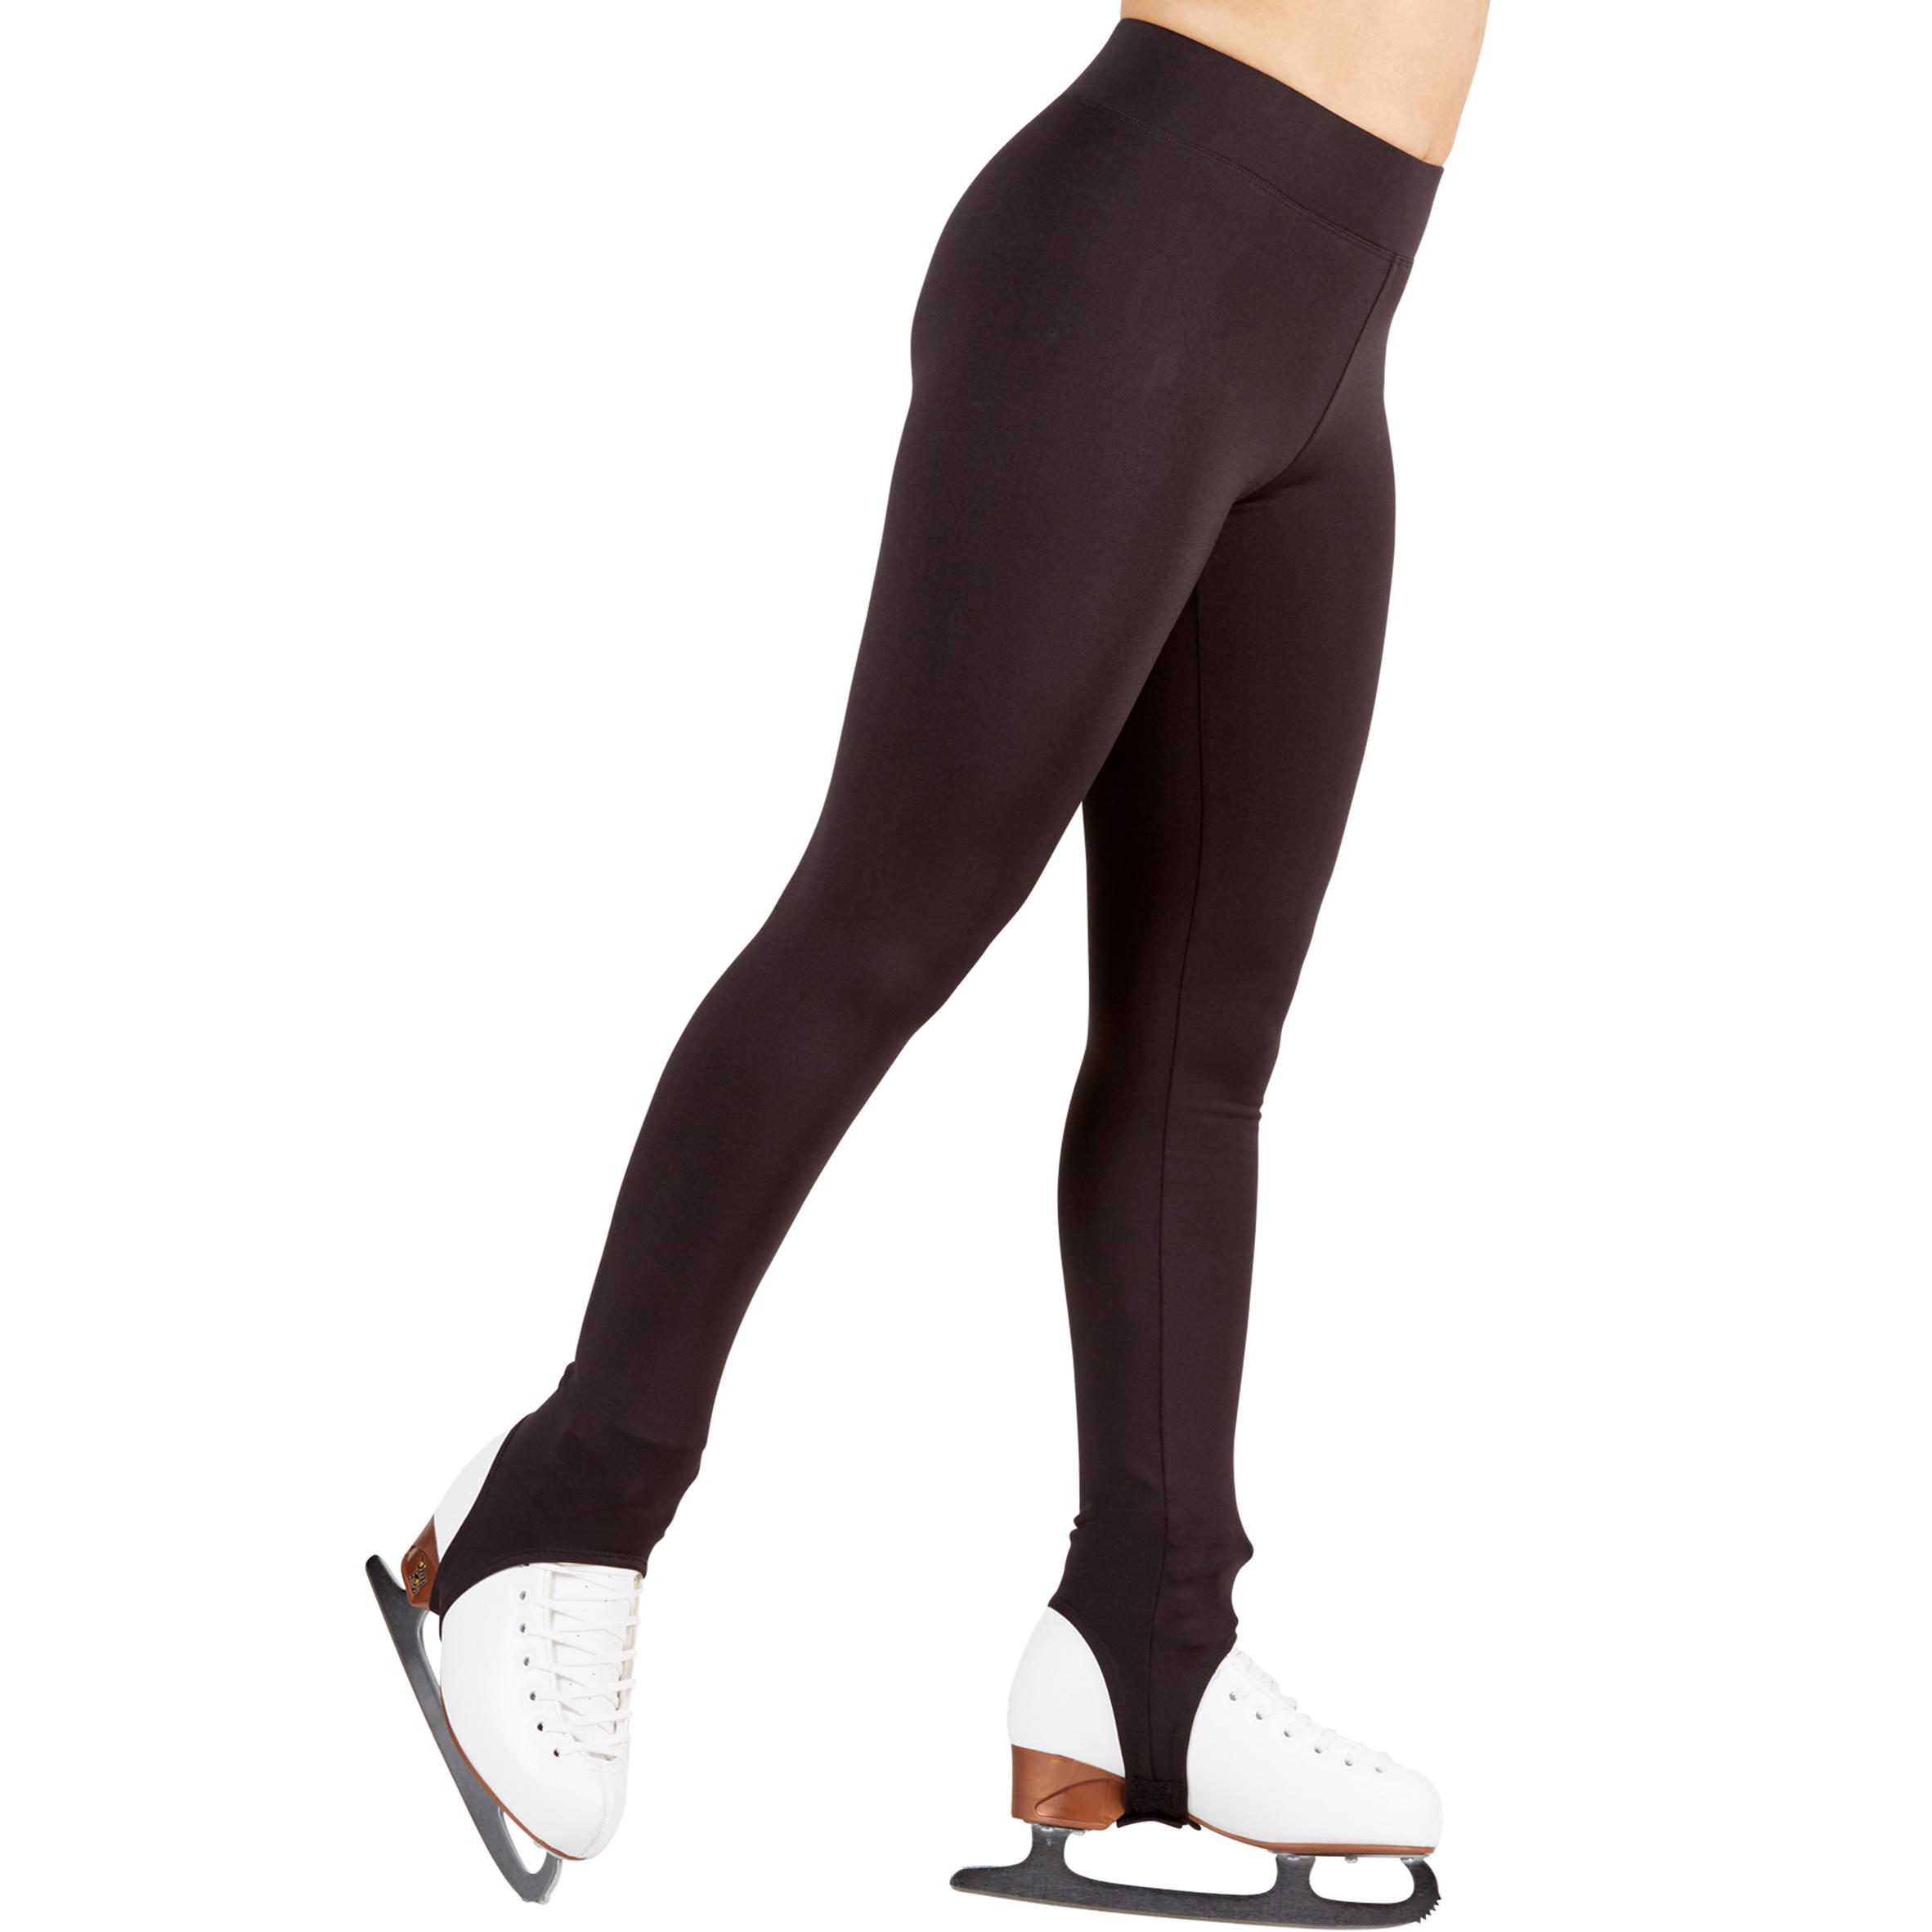 Adult Figure Skating Training Bottoms - Black